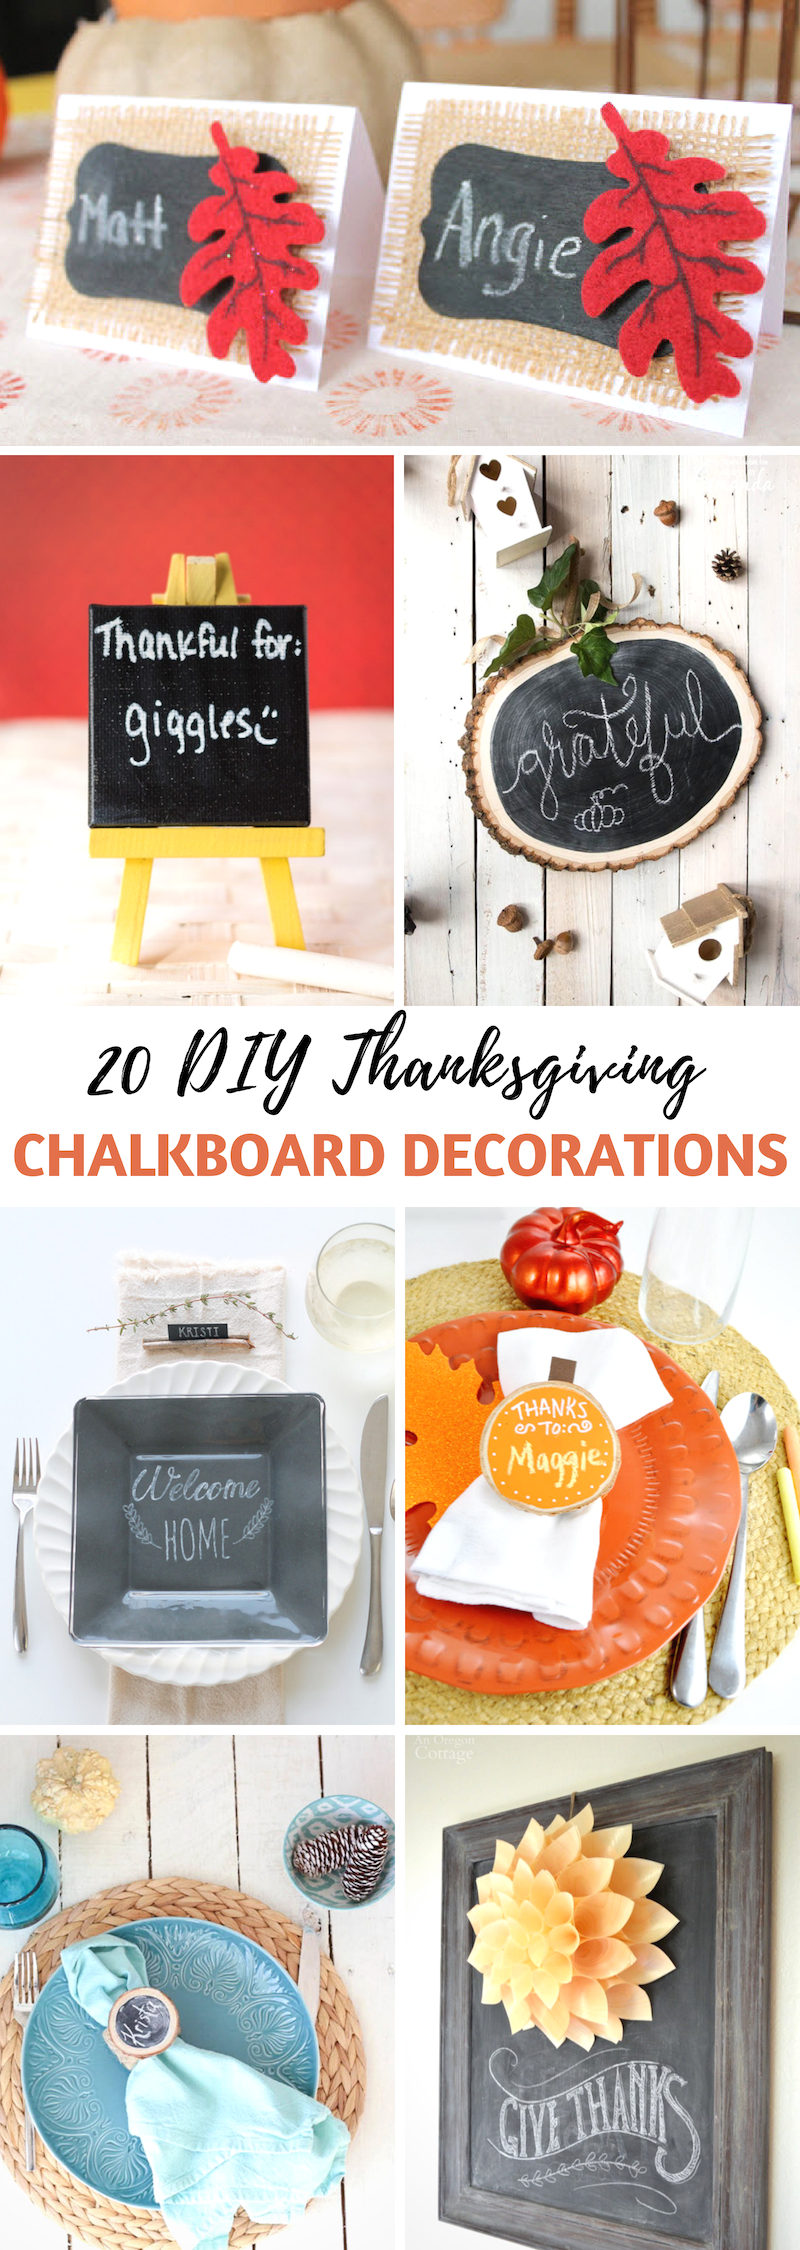 DIY Thanksgiving Chalkboard Decorations